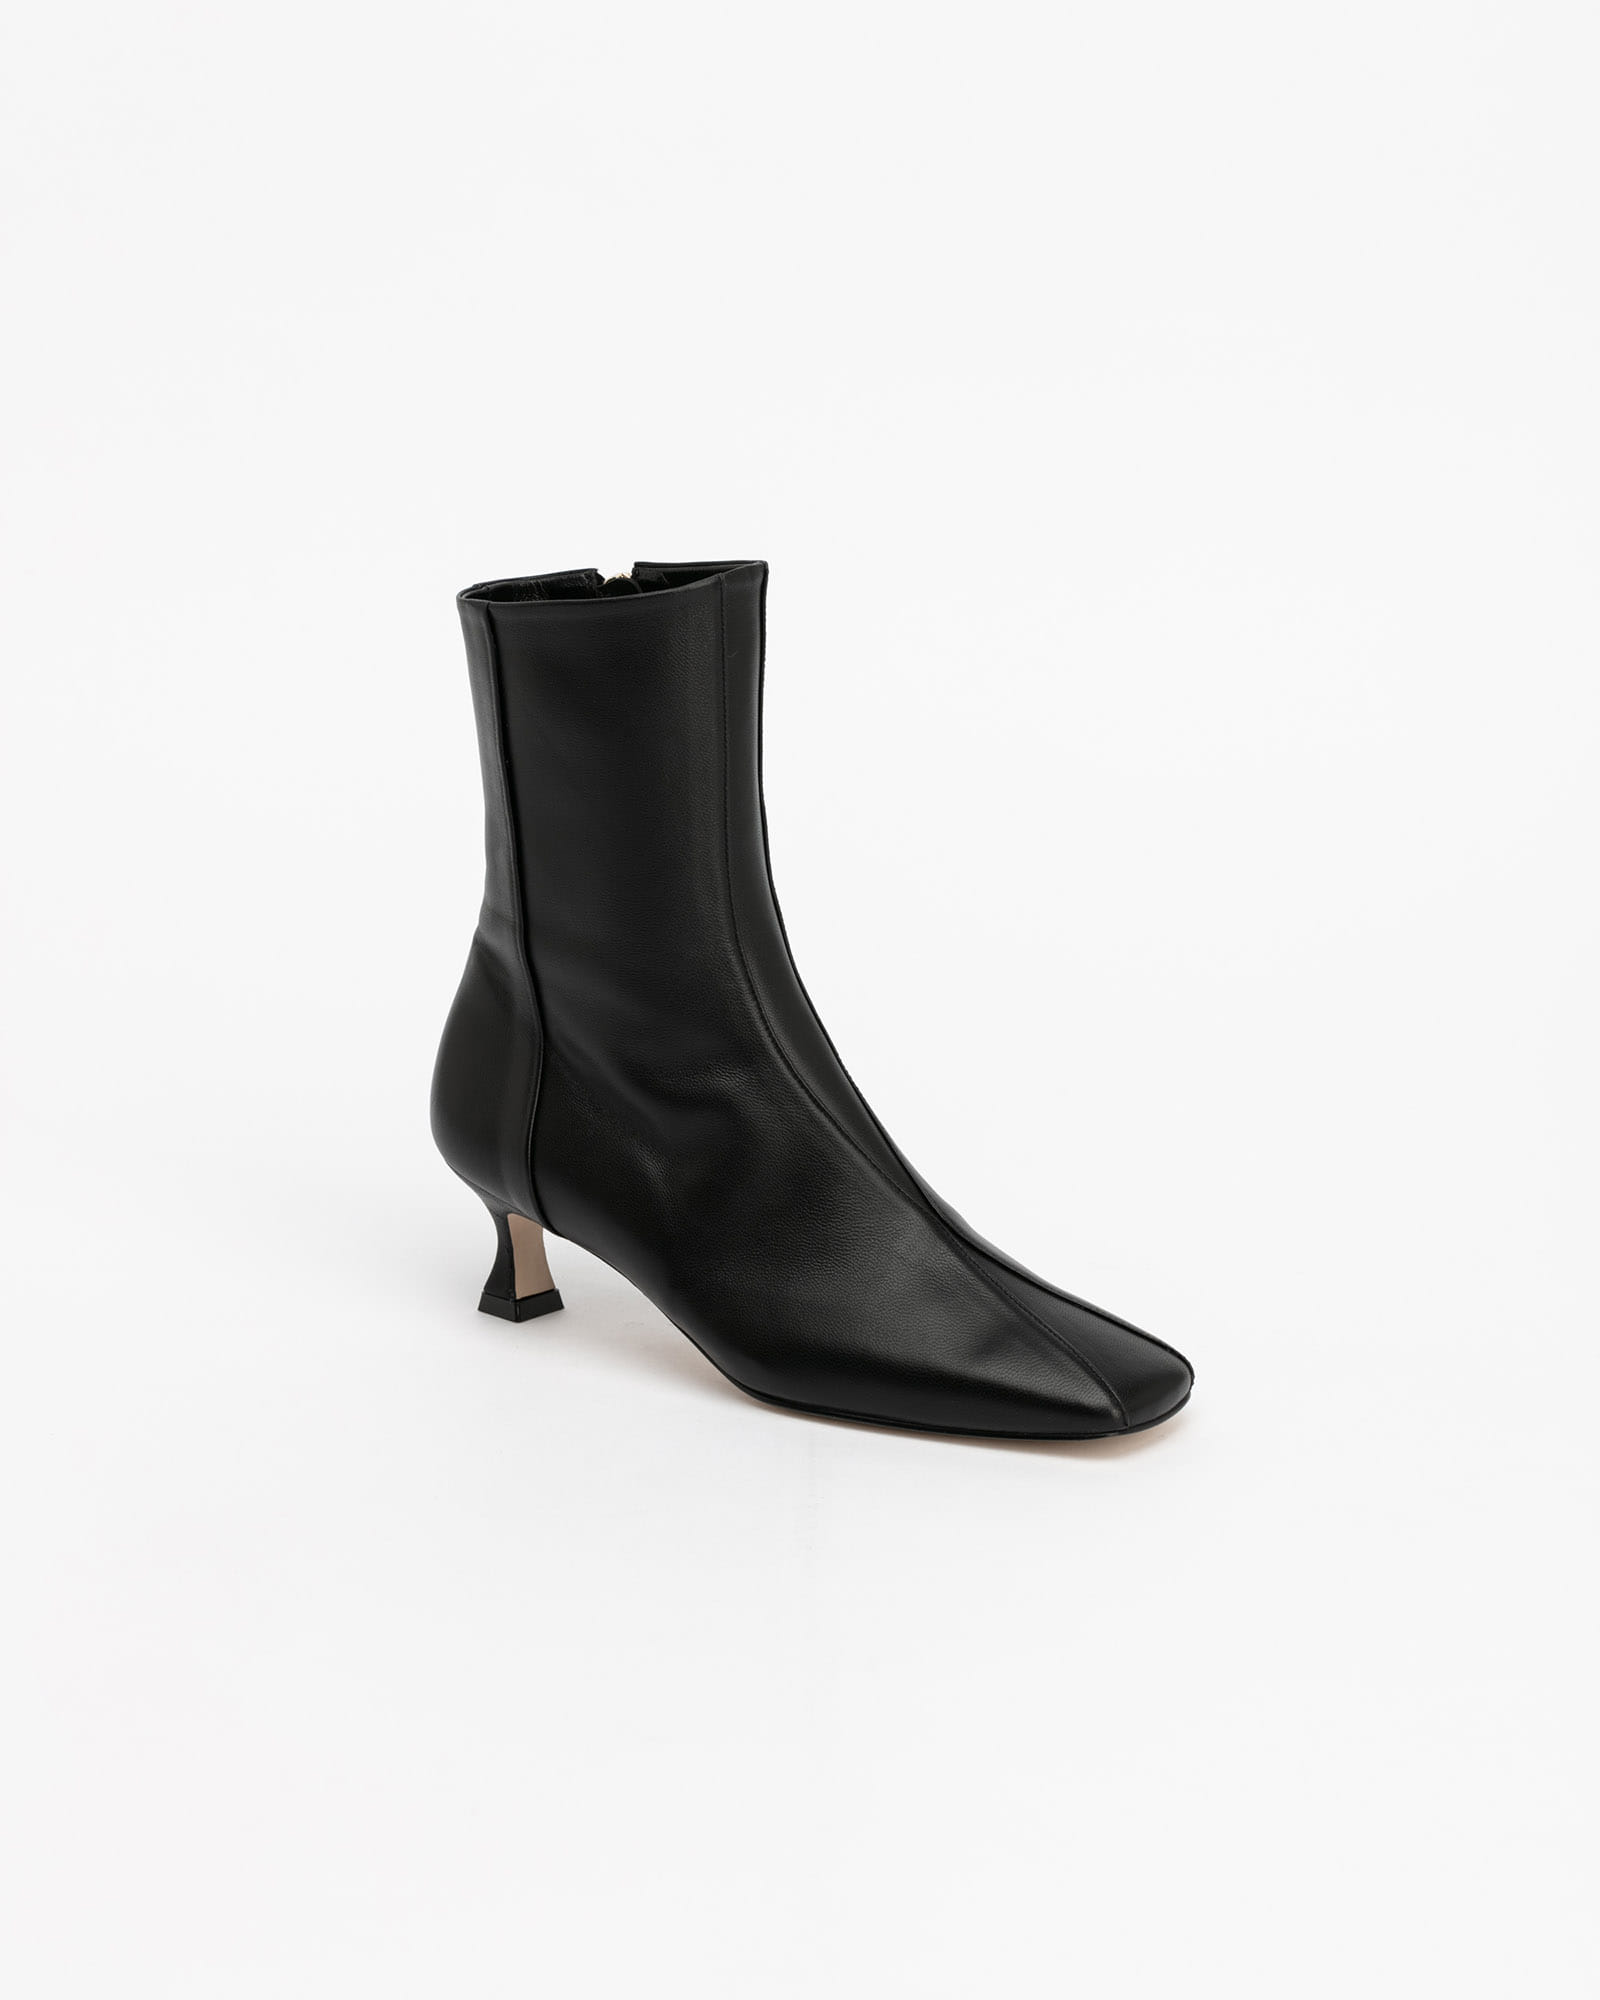 Chester Boots in Black